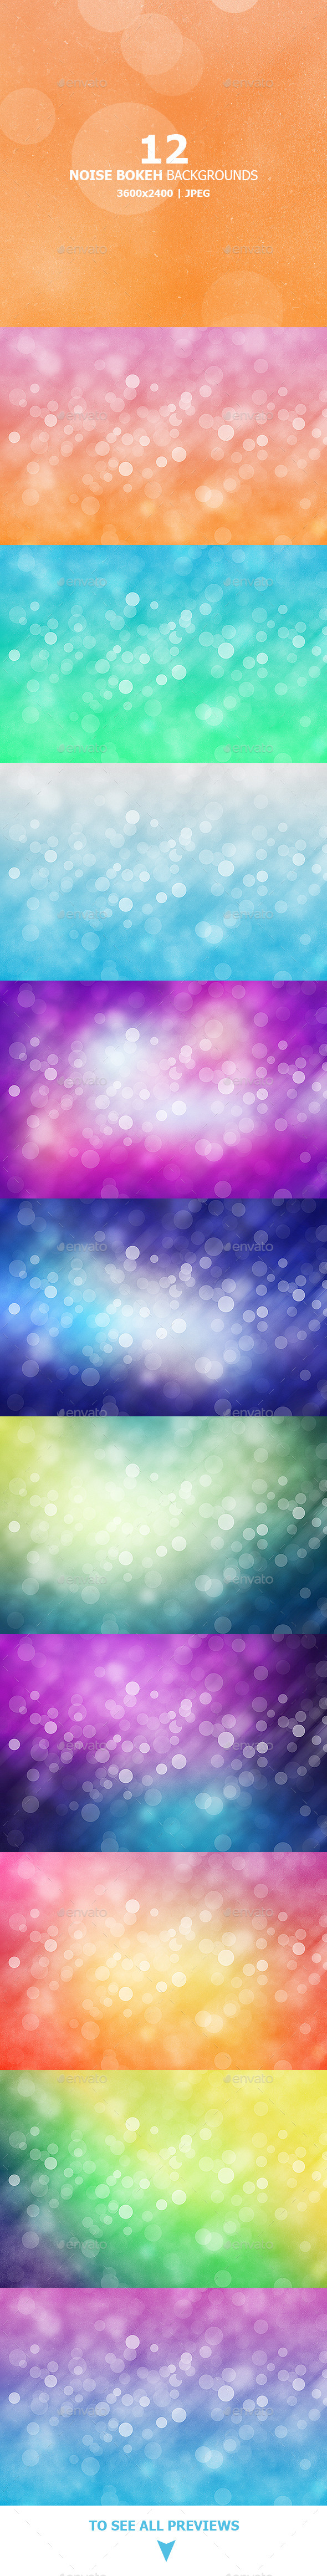 GraphicRiver Noise Bokeh Backgrounds 9490936